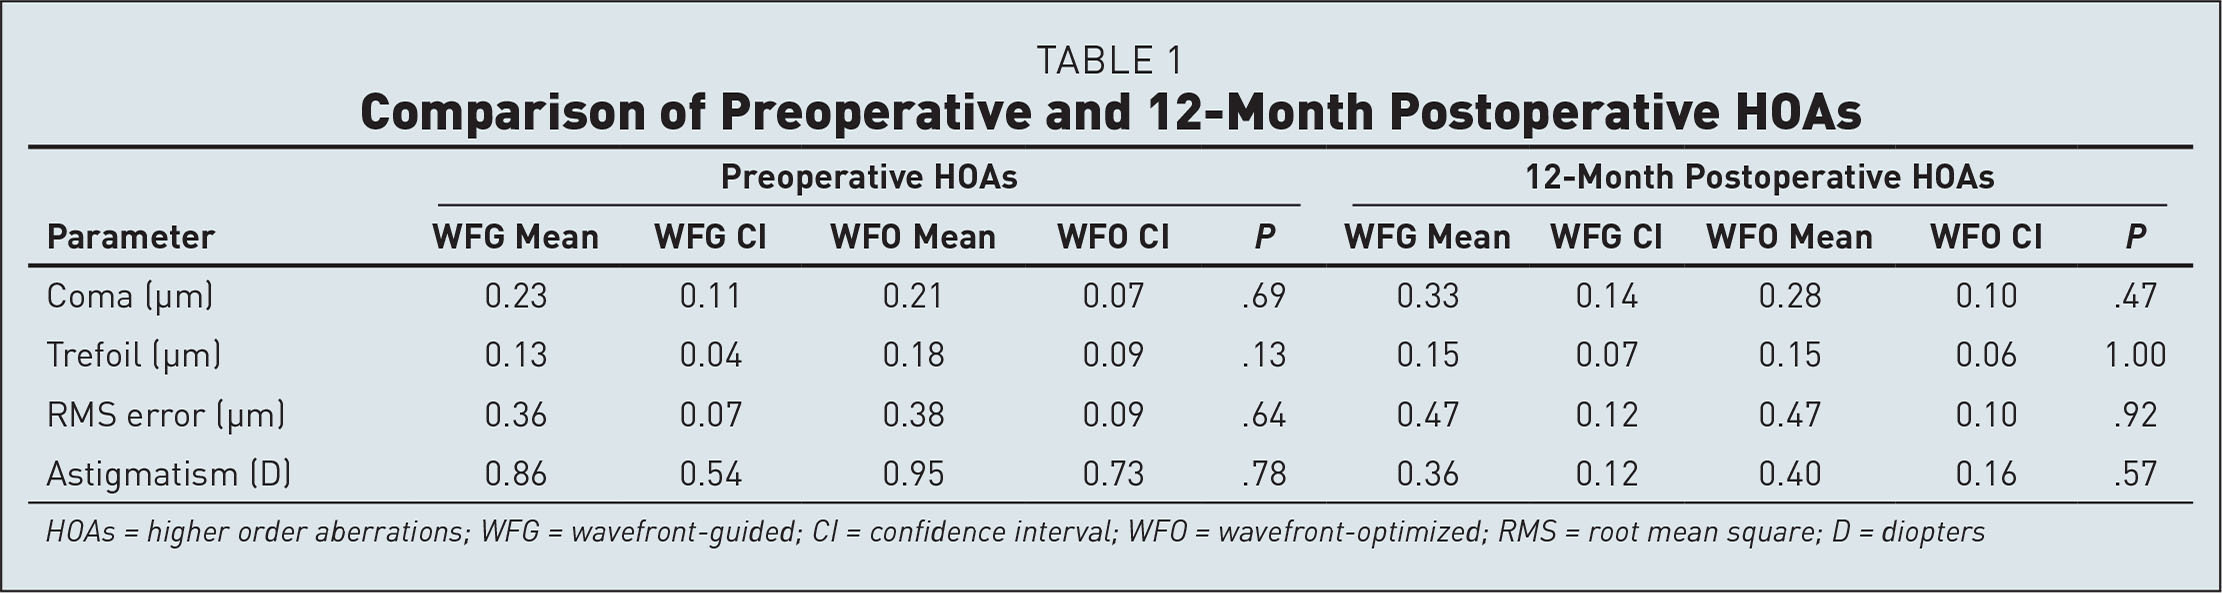 Comparison of Preoperative and 12-Month Postoperative HOAs